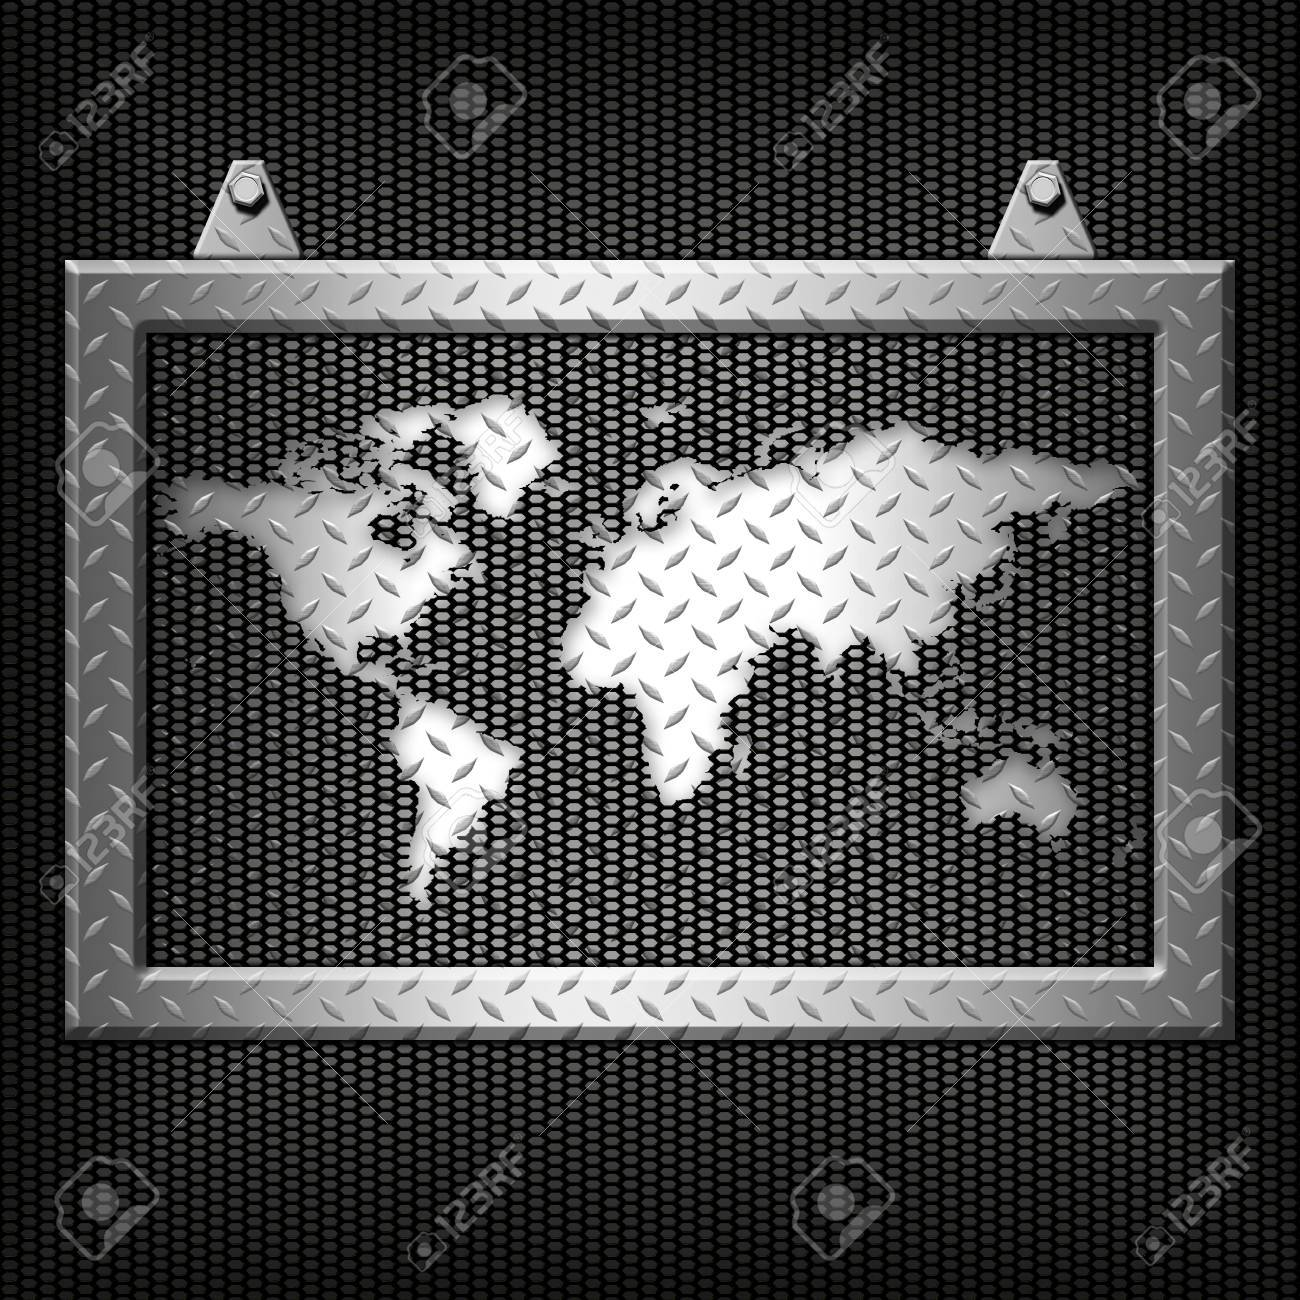 Metal Diamond Plate Frame On A Metal Background Stock Photo, Picture ...